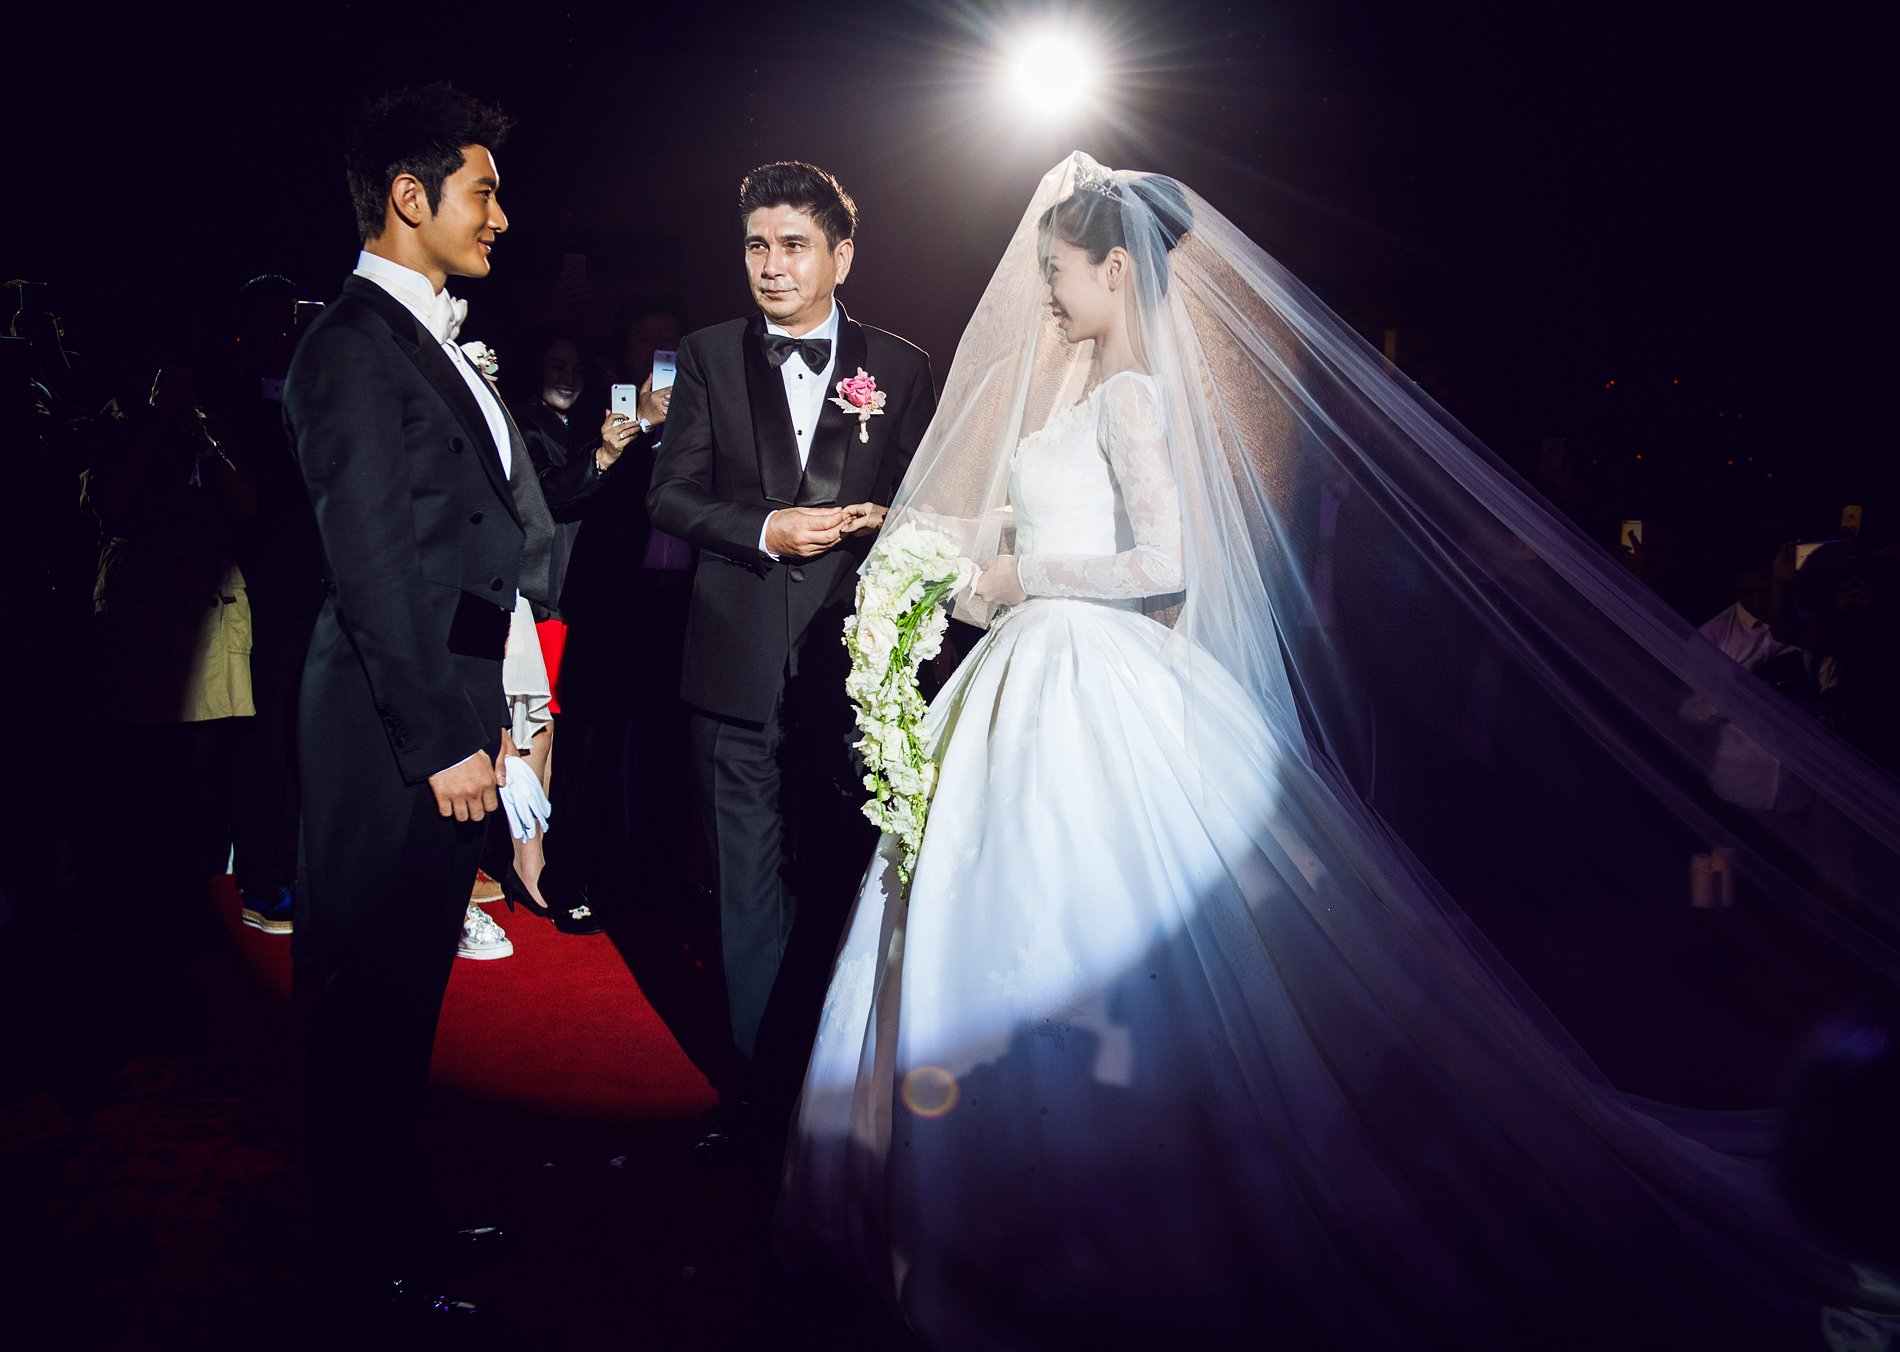 Chinese screen stars Huang Xiaoming and Angelababy wed before 2,000